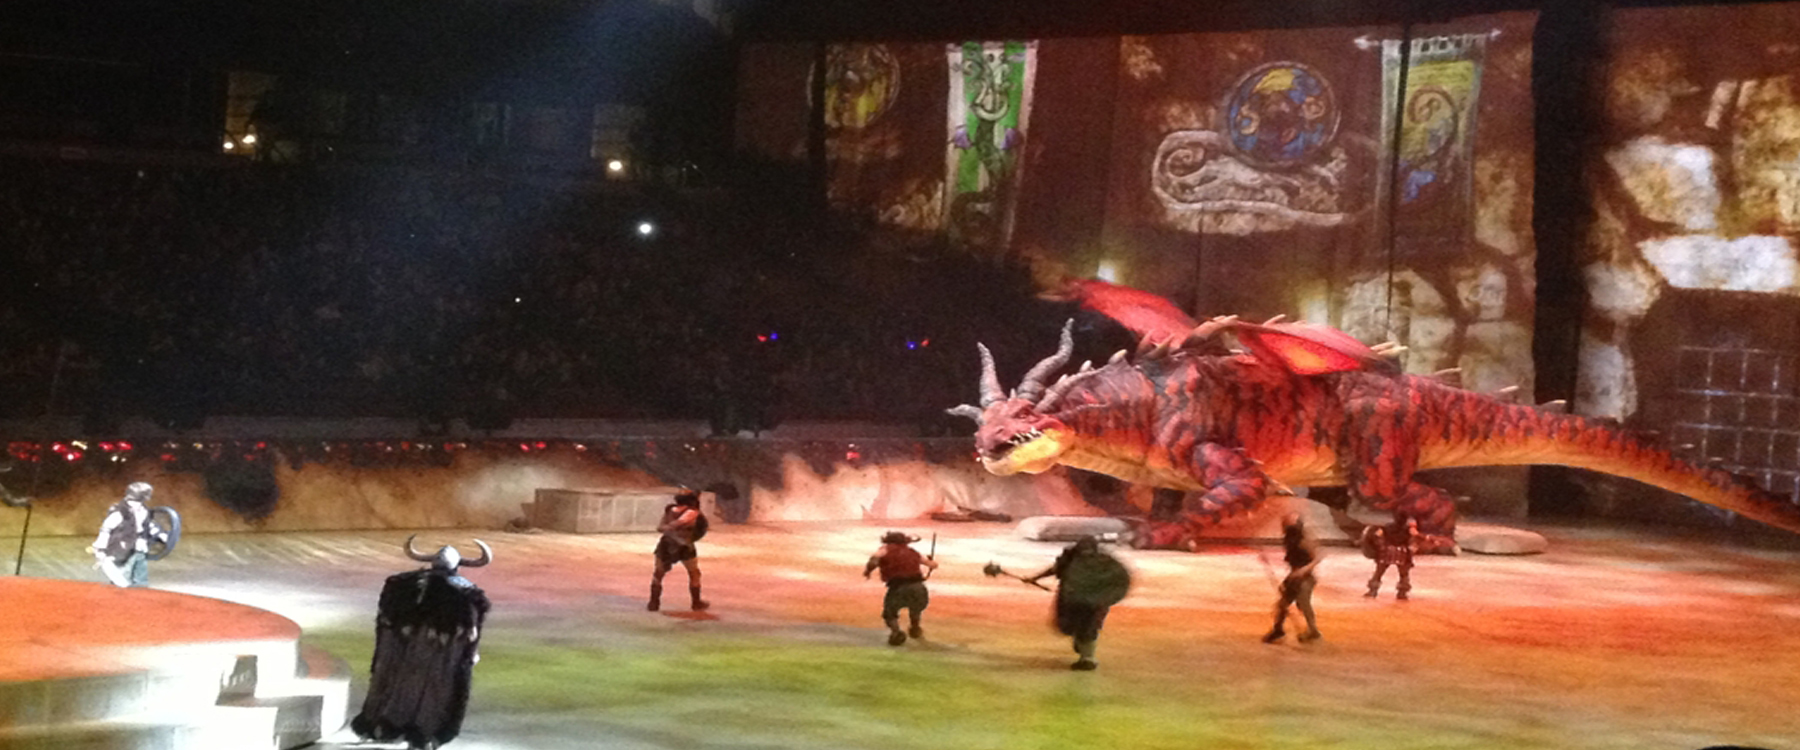 how to train your dragon arco arena